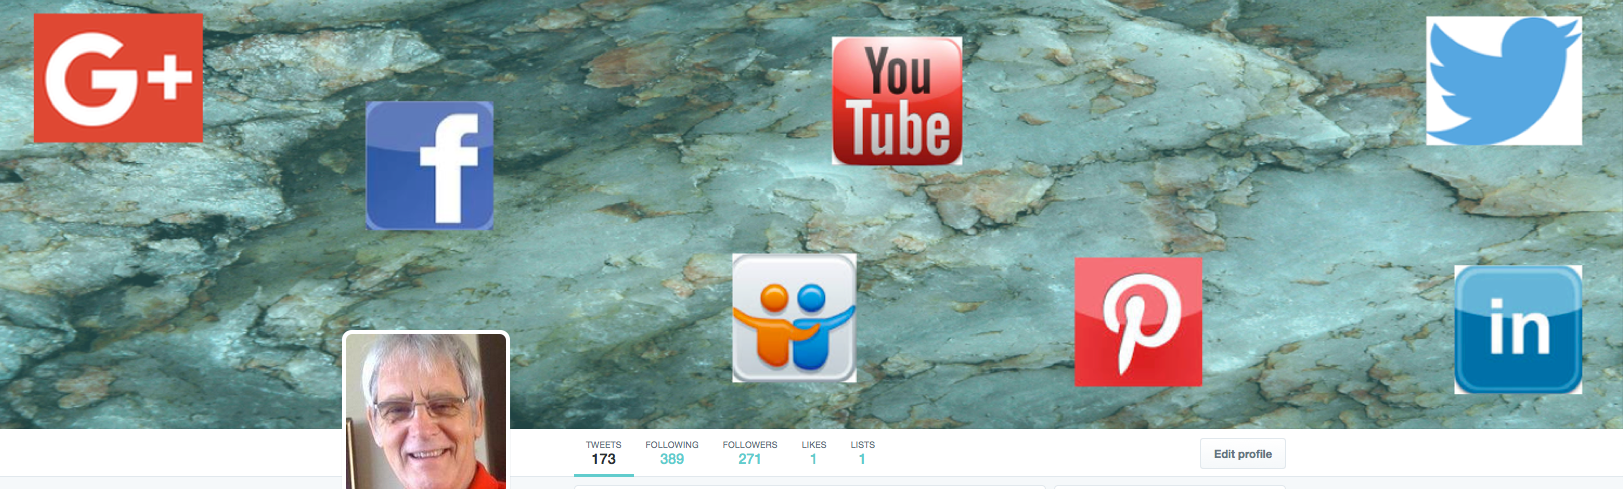 social media sites Twitter header & profile picture